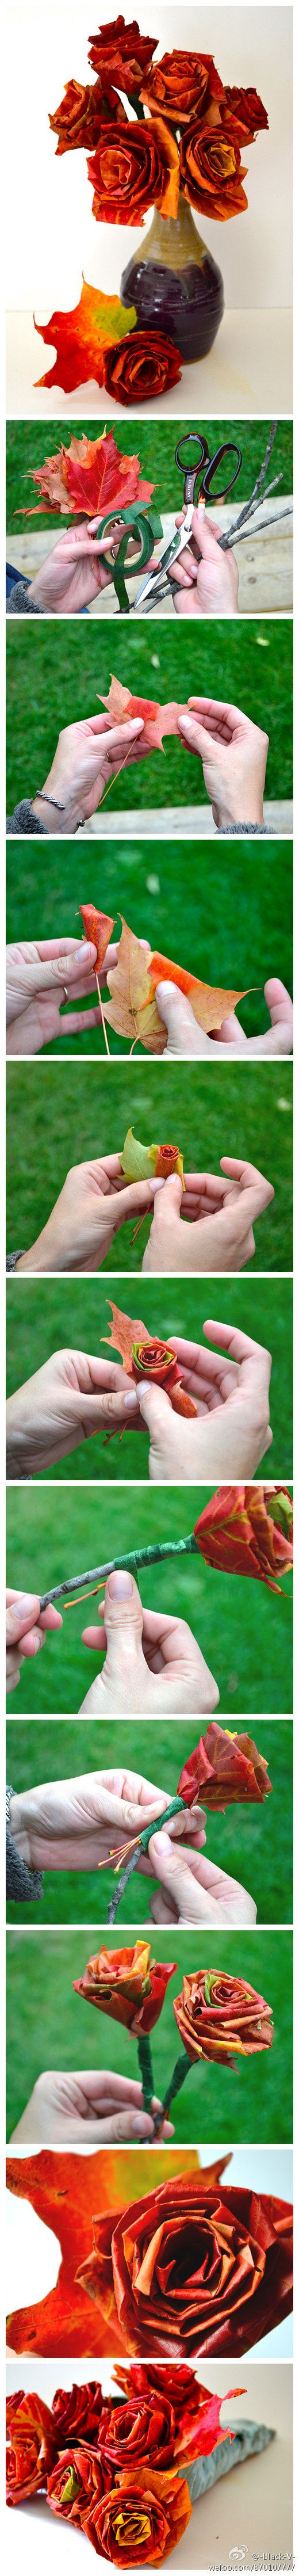 Make a holiday Rose or bouquet out of Fall leaves. Cool idea! #wedding www.BlueRainbowDesign.com